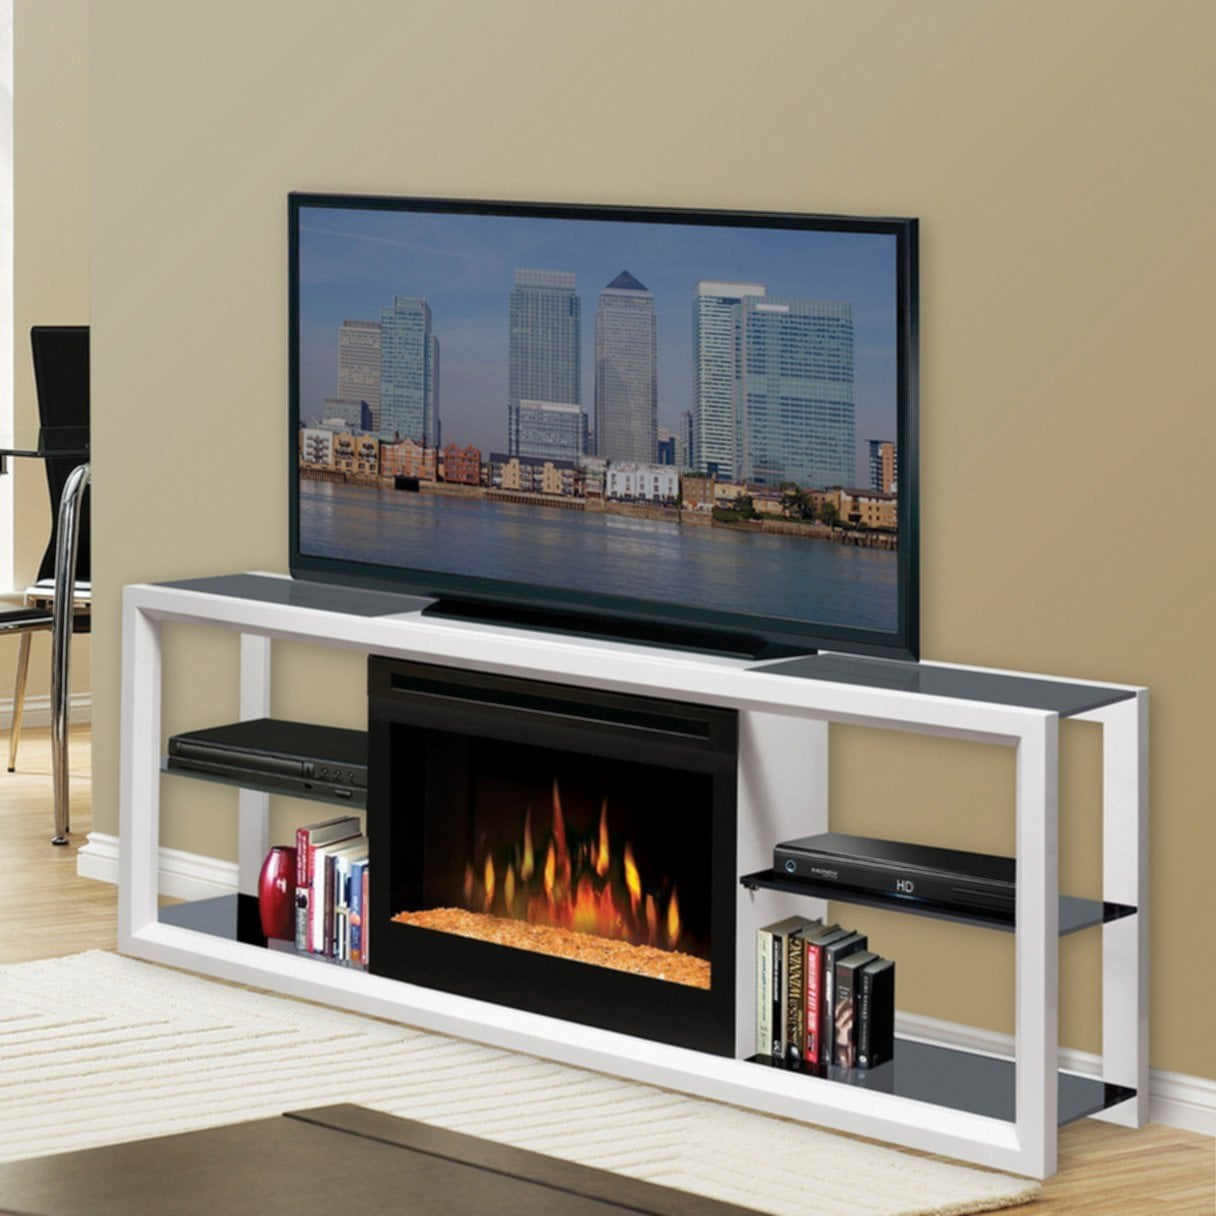 Discount Fireplace Tv Stand